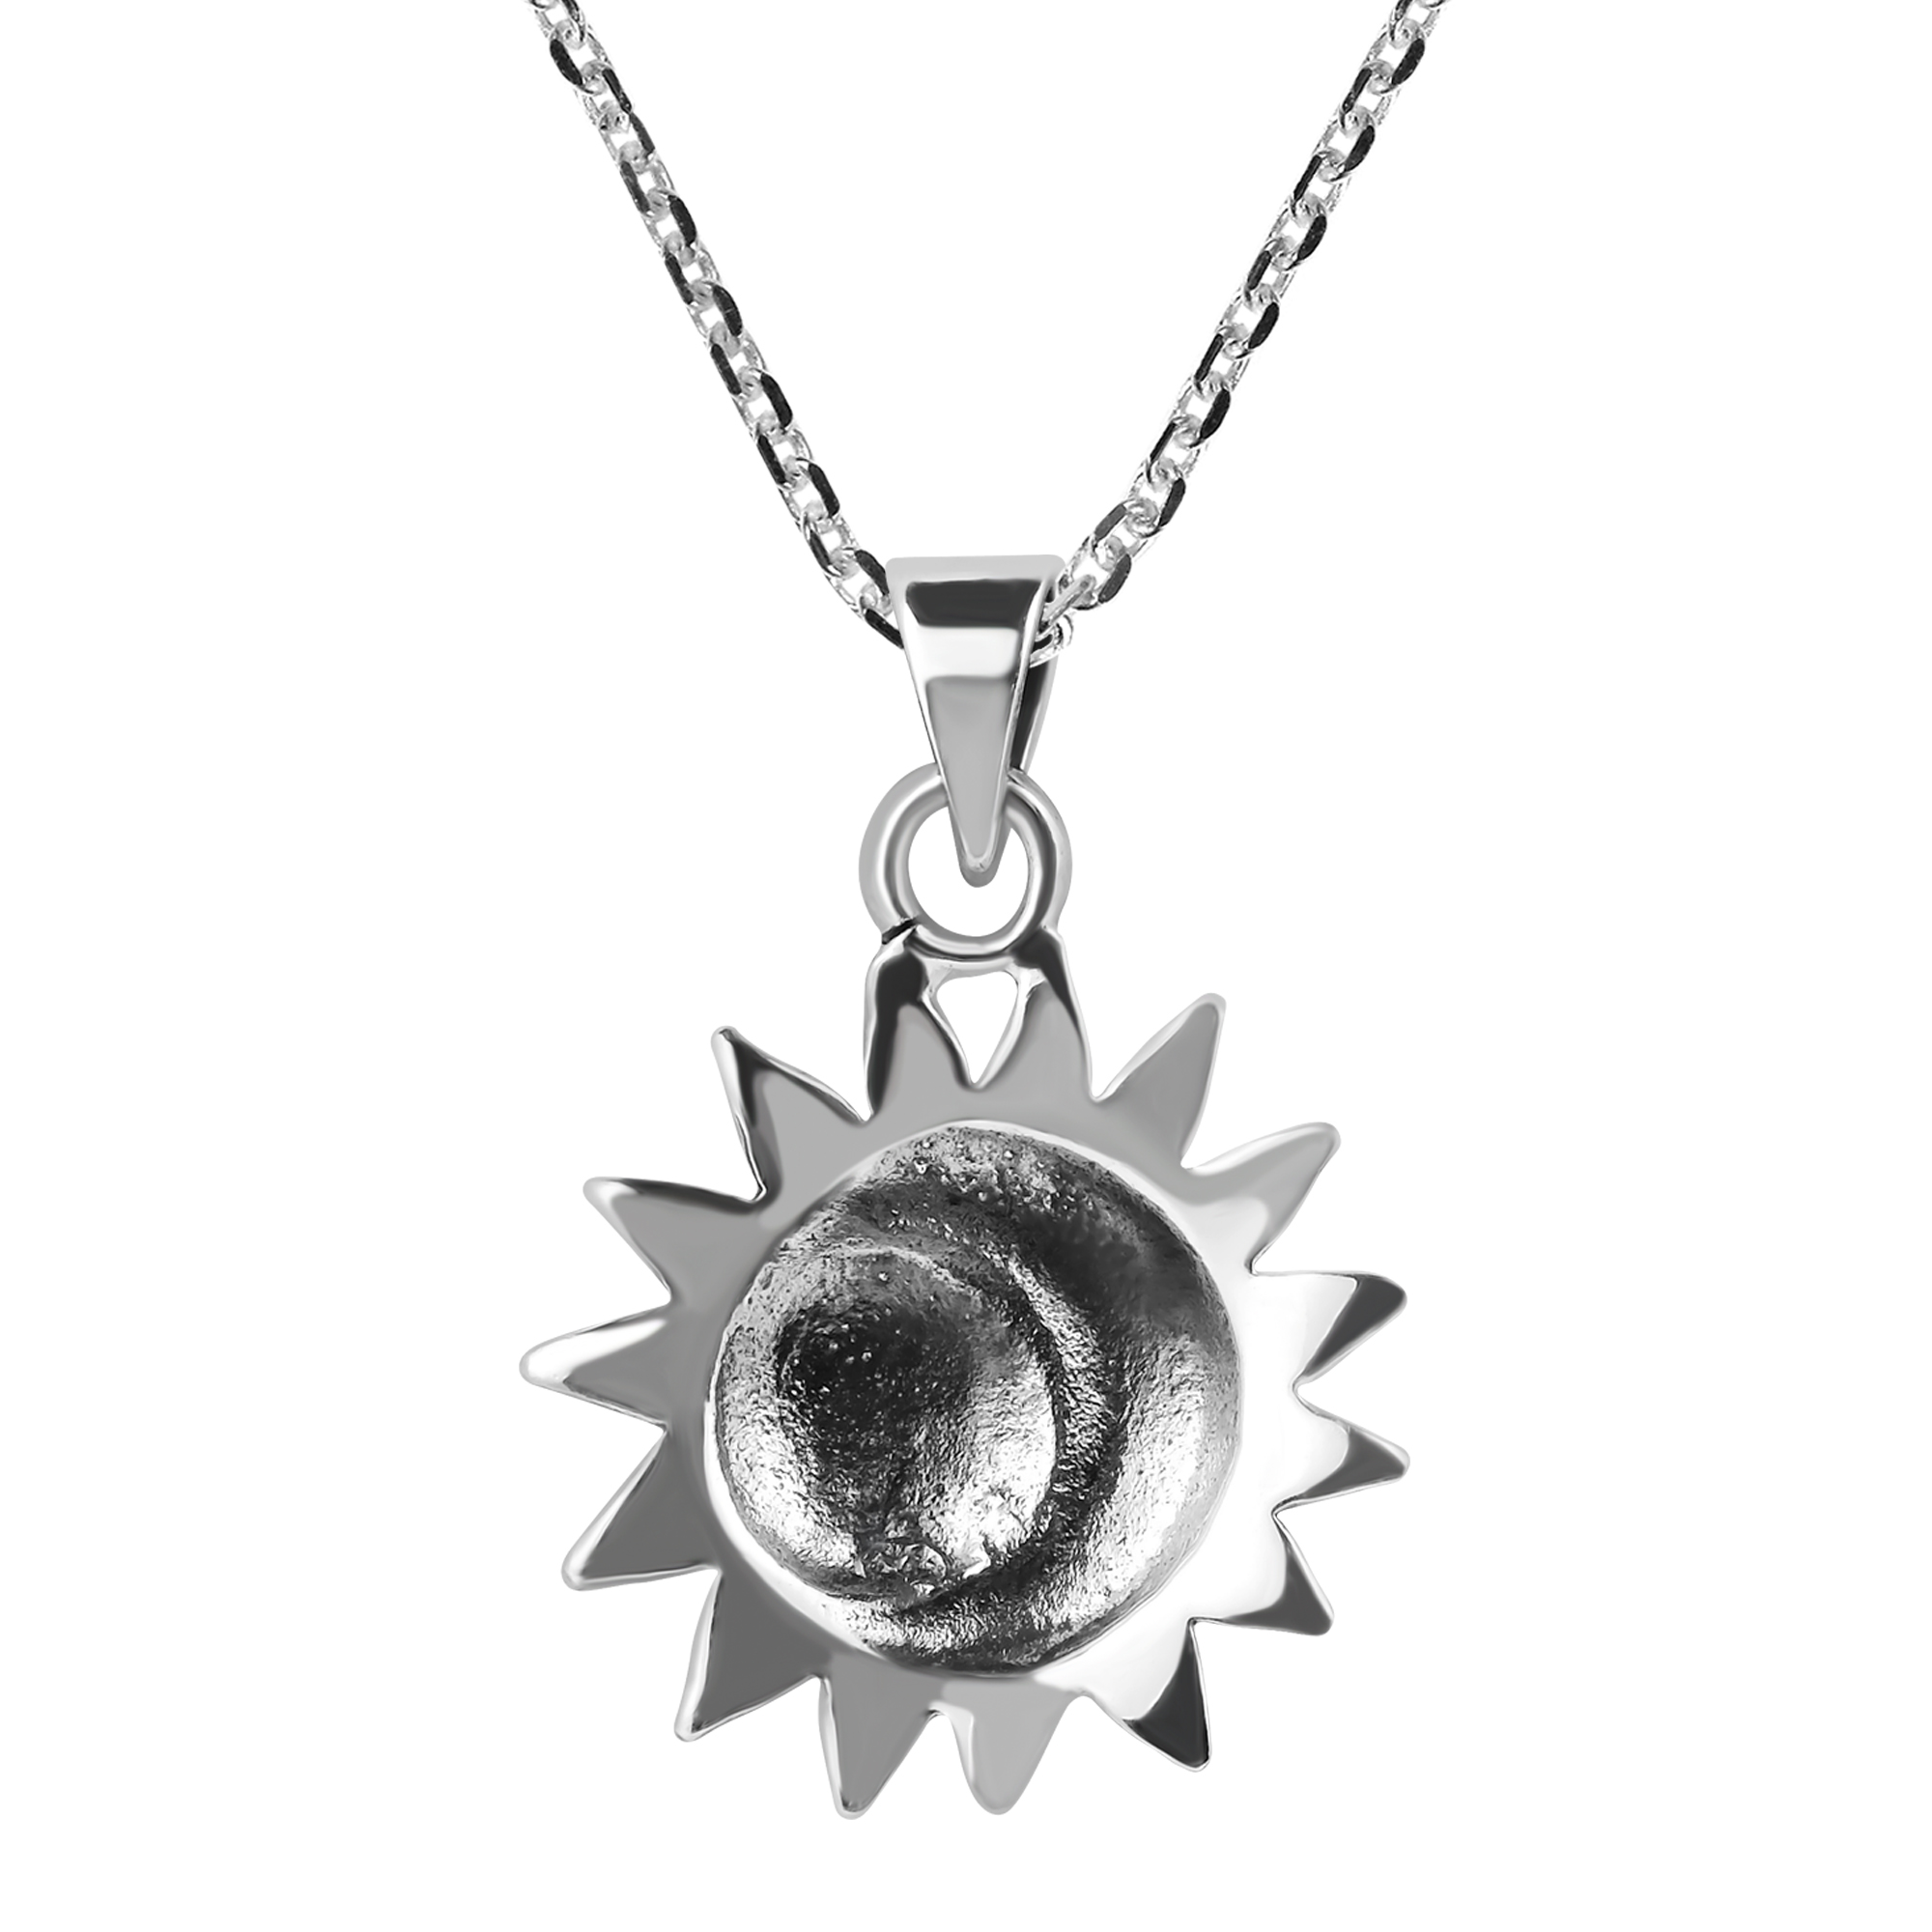 o necklace aeravida thailand beautiful s glinting plain silver and pendant this undefined in sterlng the combine personified products a sun celestial handmade of version moon features expert silversmith khun necklaces pn by